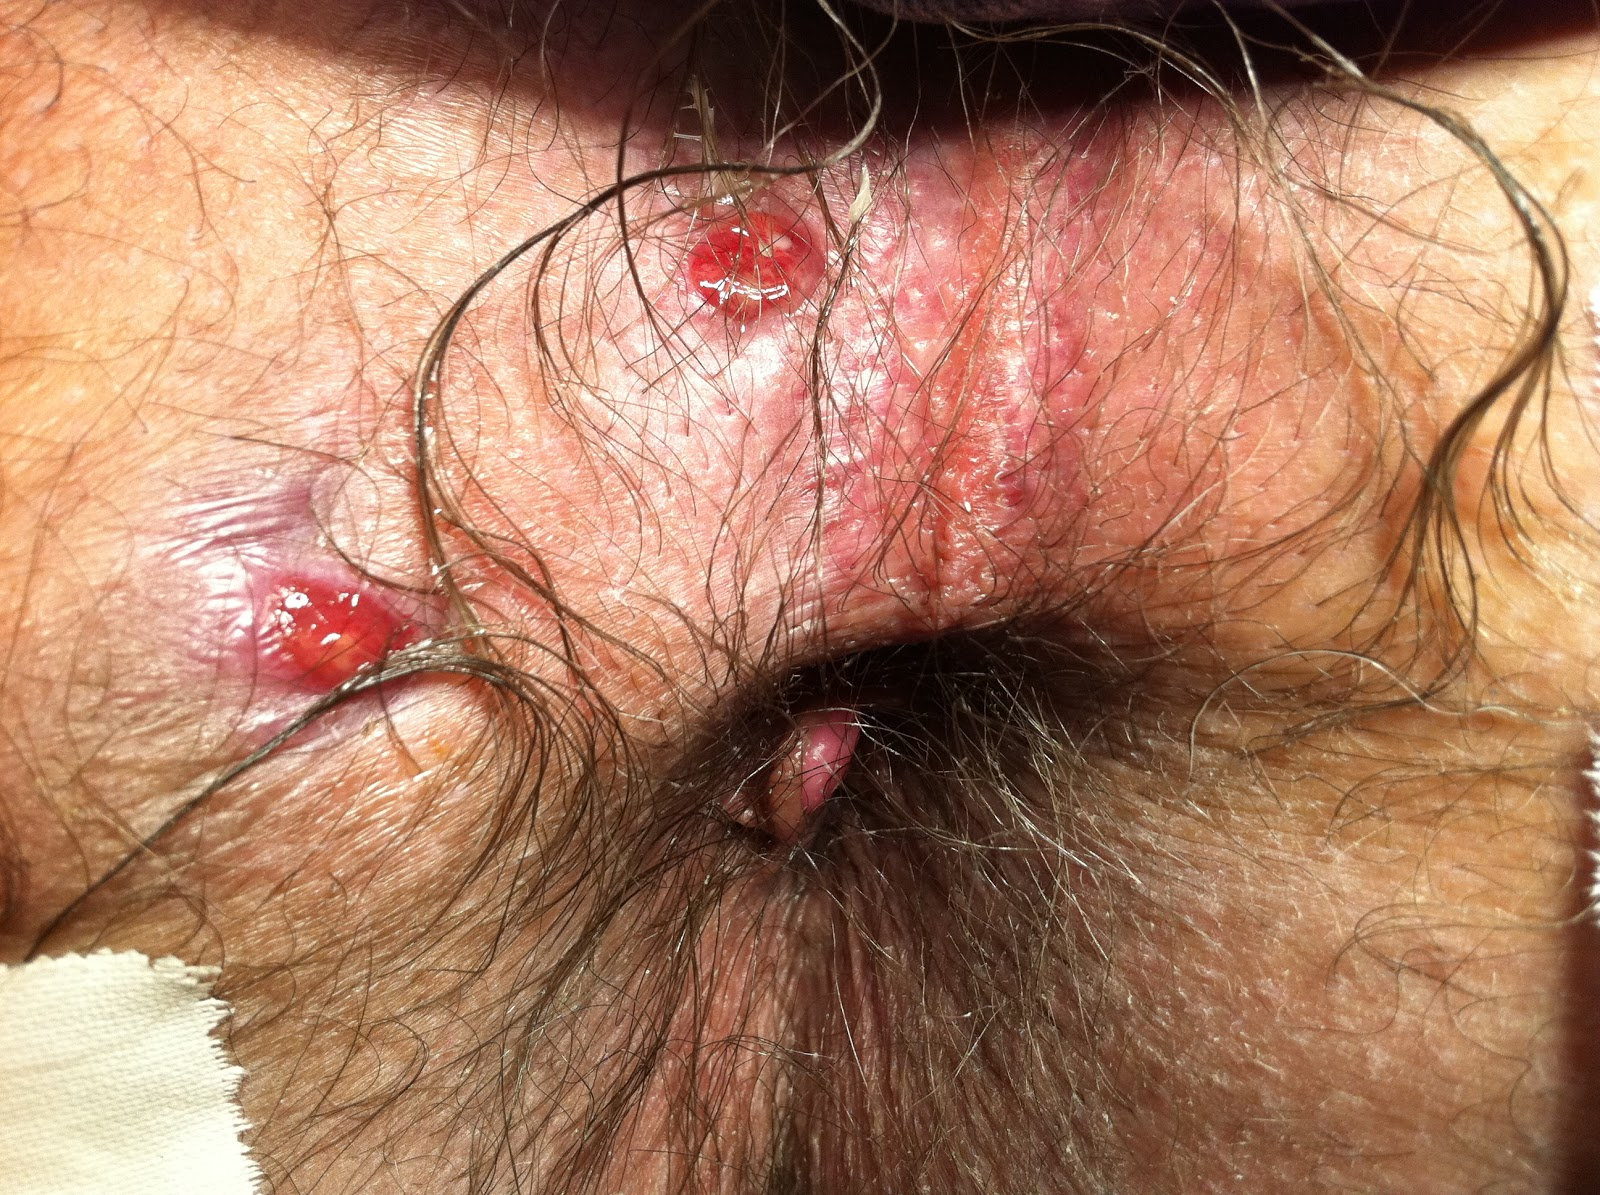 Anal fissure or herpes